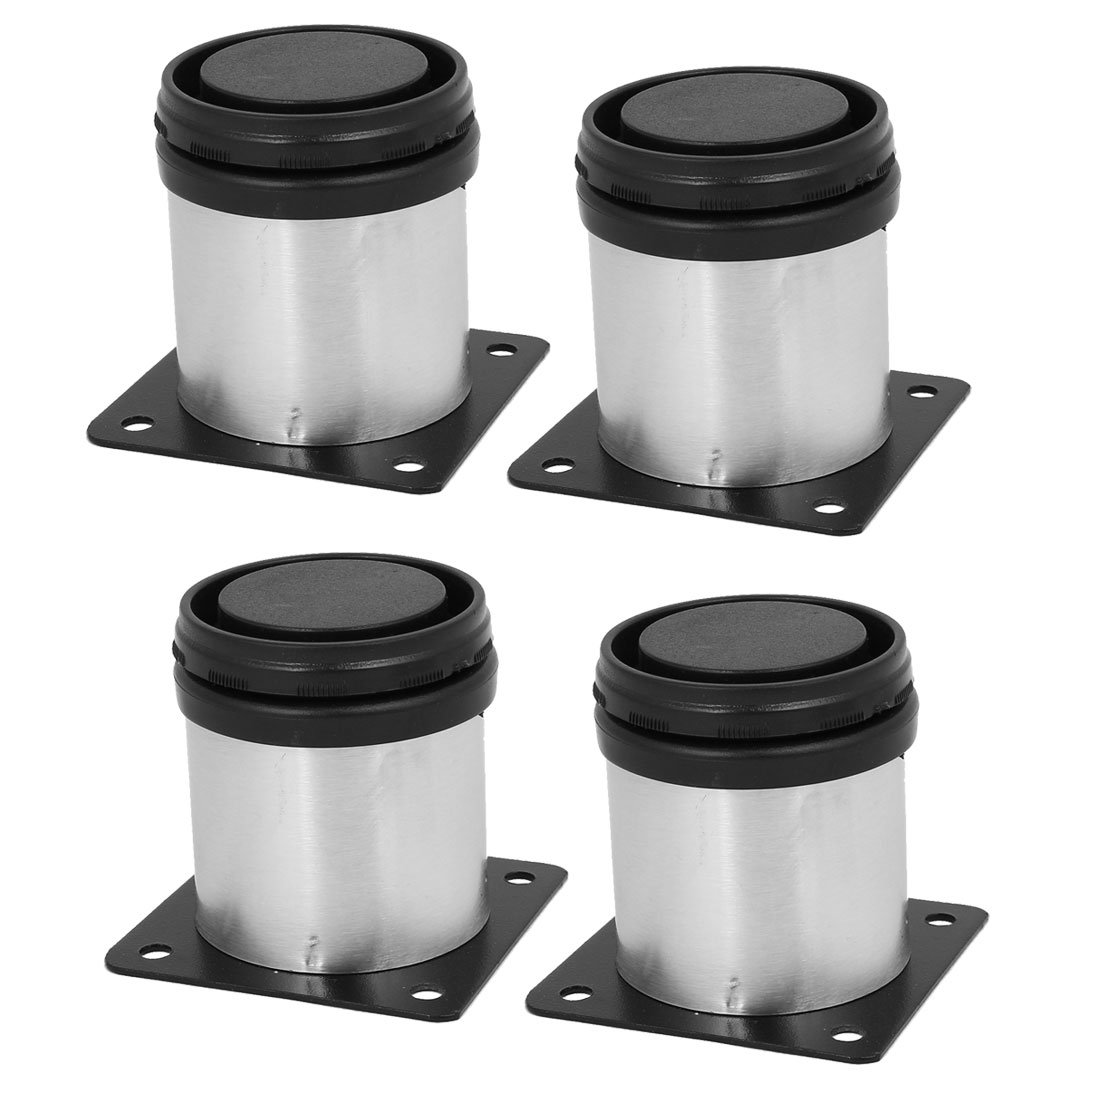 uxcell 50mm x 60mm Metal Adjustable Cabinet Sofa Feet Leg Round Stand 4PCS